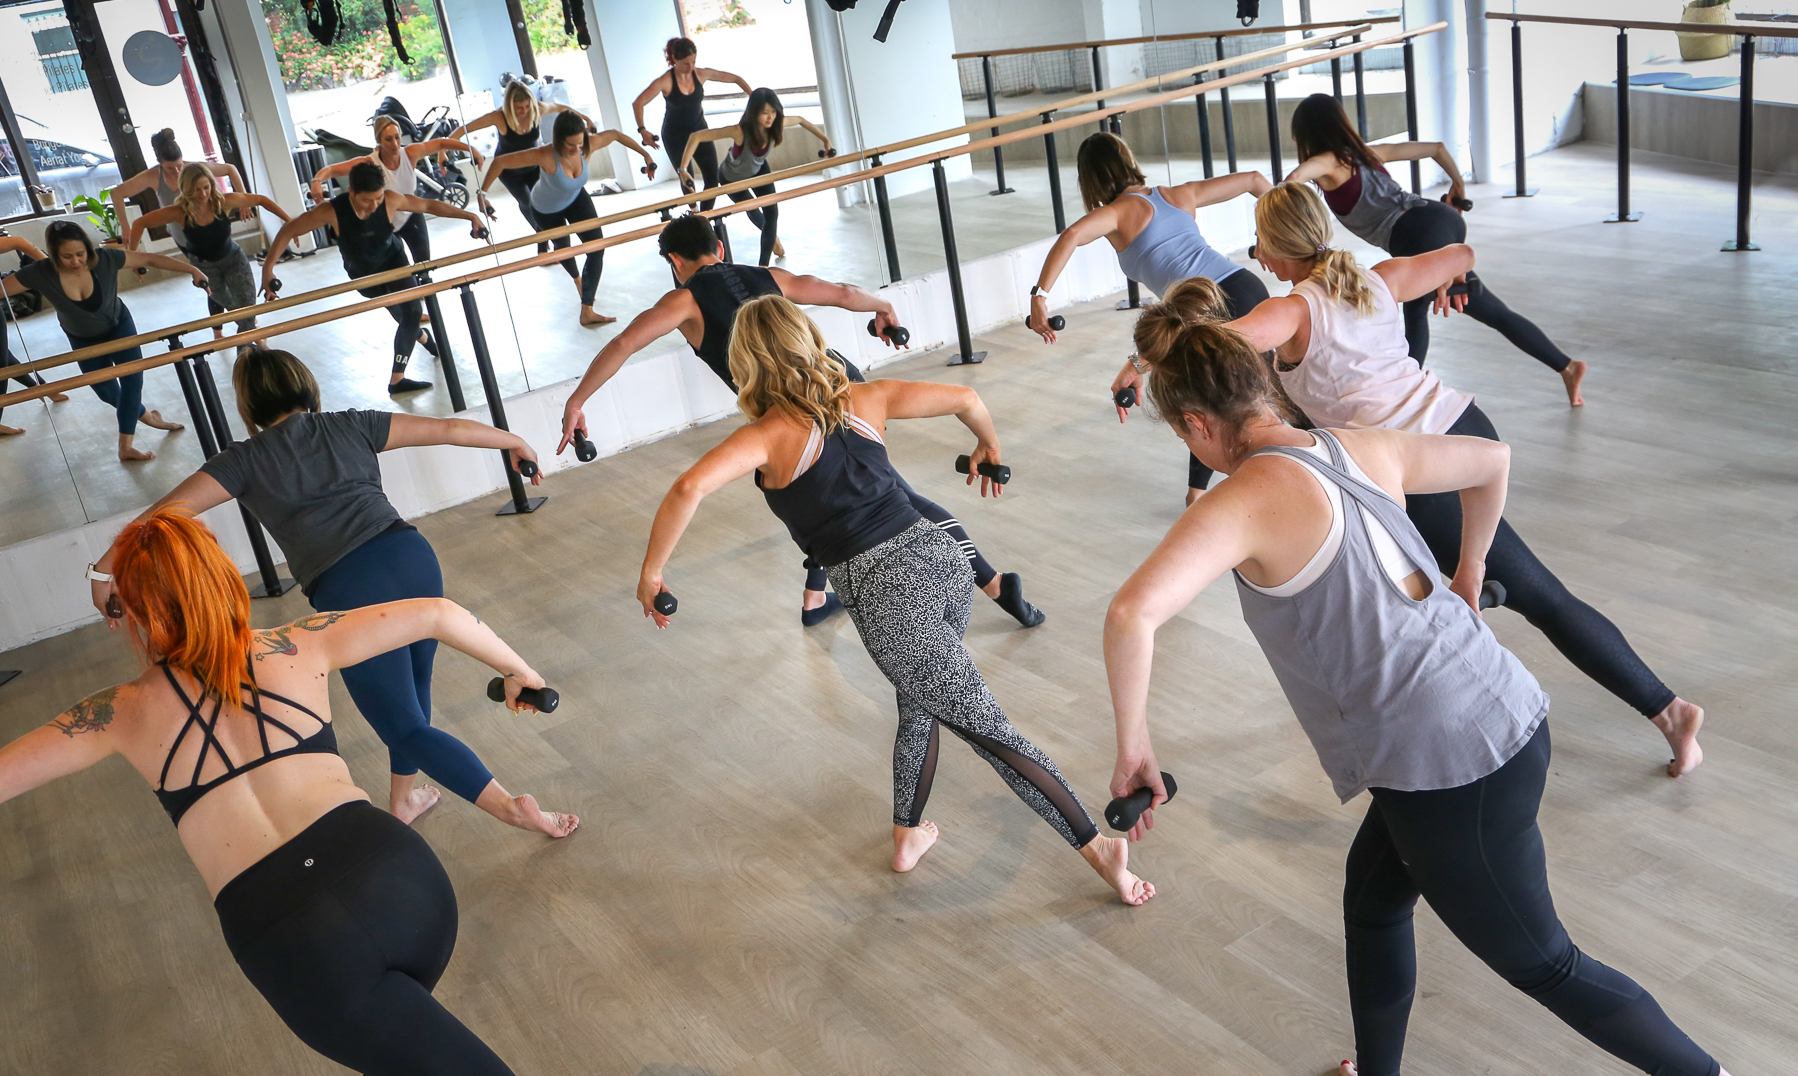 Exercise class at S3 Studio in Melbourne